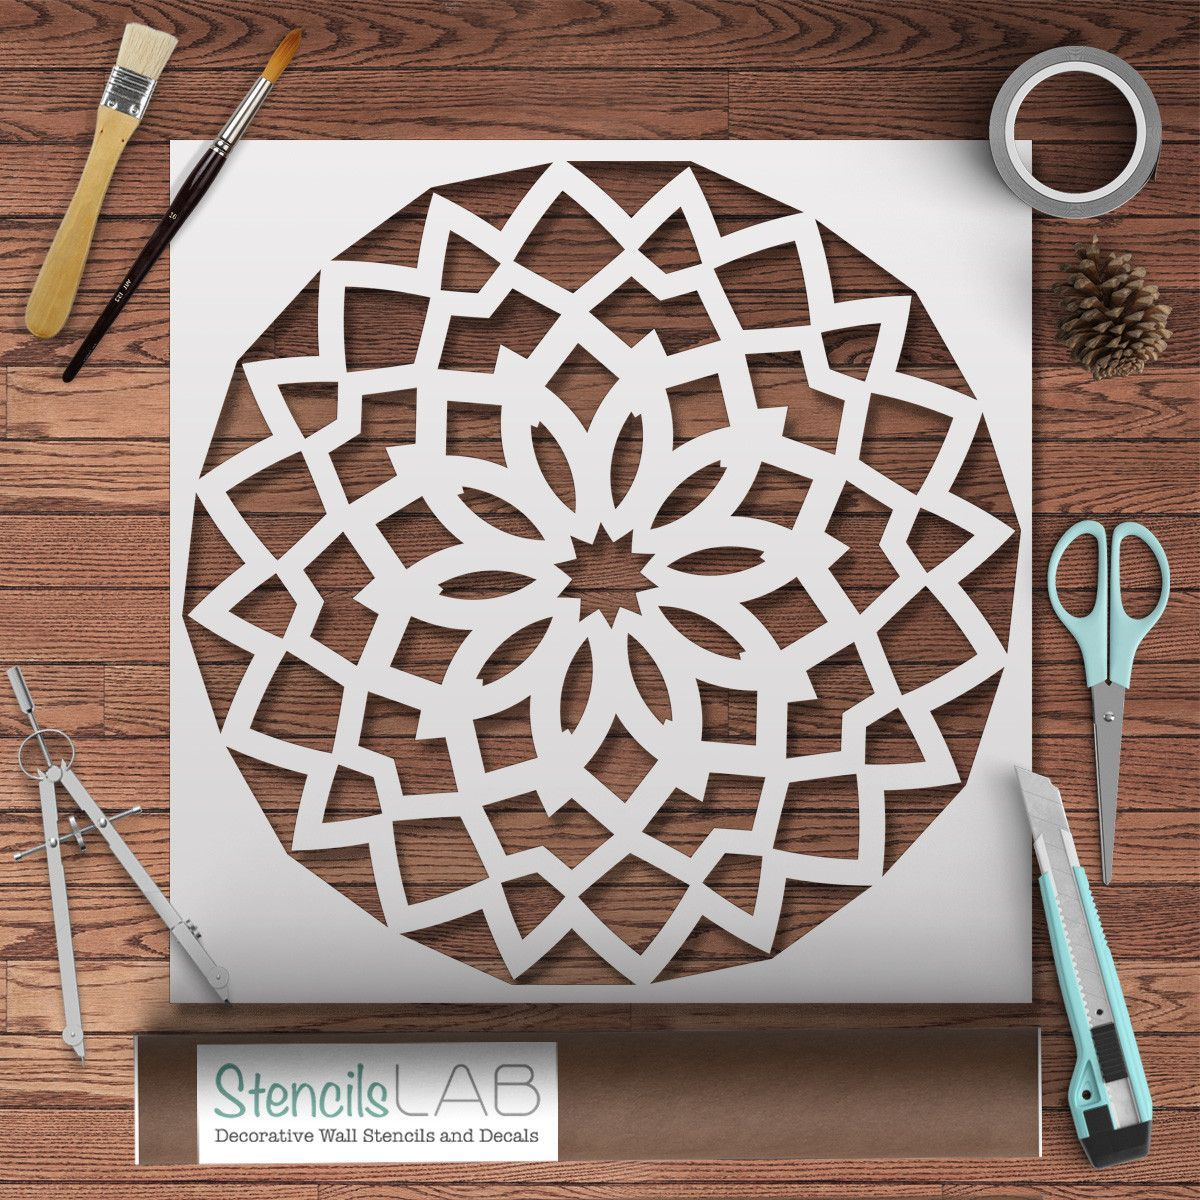 Round geometric mandala style stencil for wall decor original round geometric mandala style stencil for wall decor original design pinting stencil amipublicfo Image collections